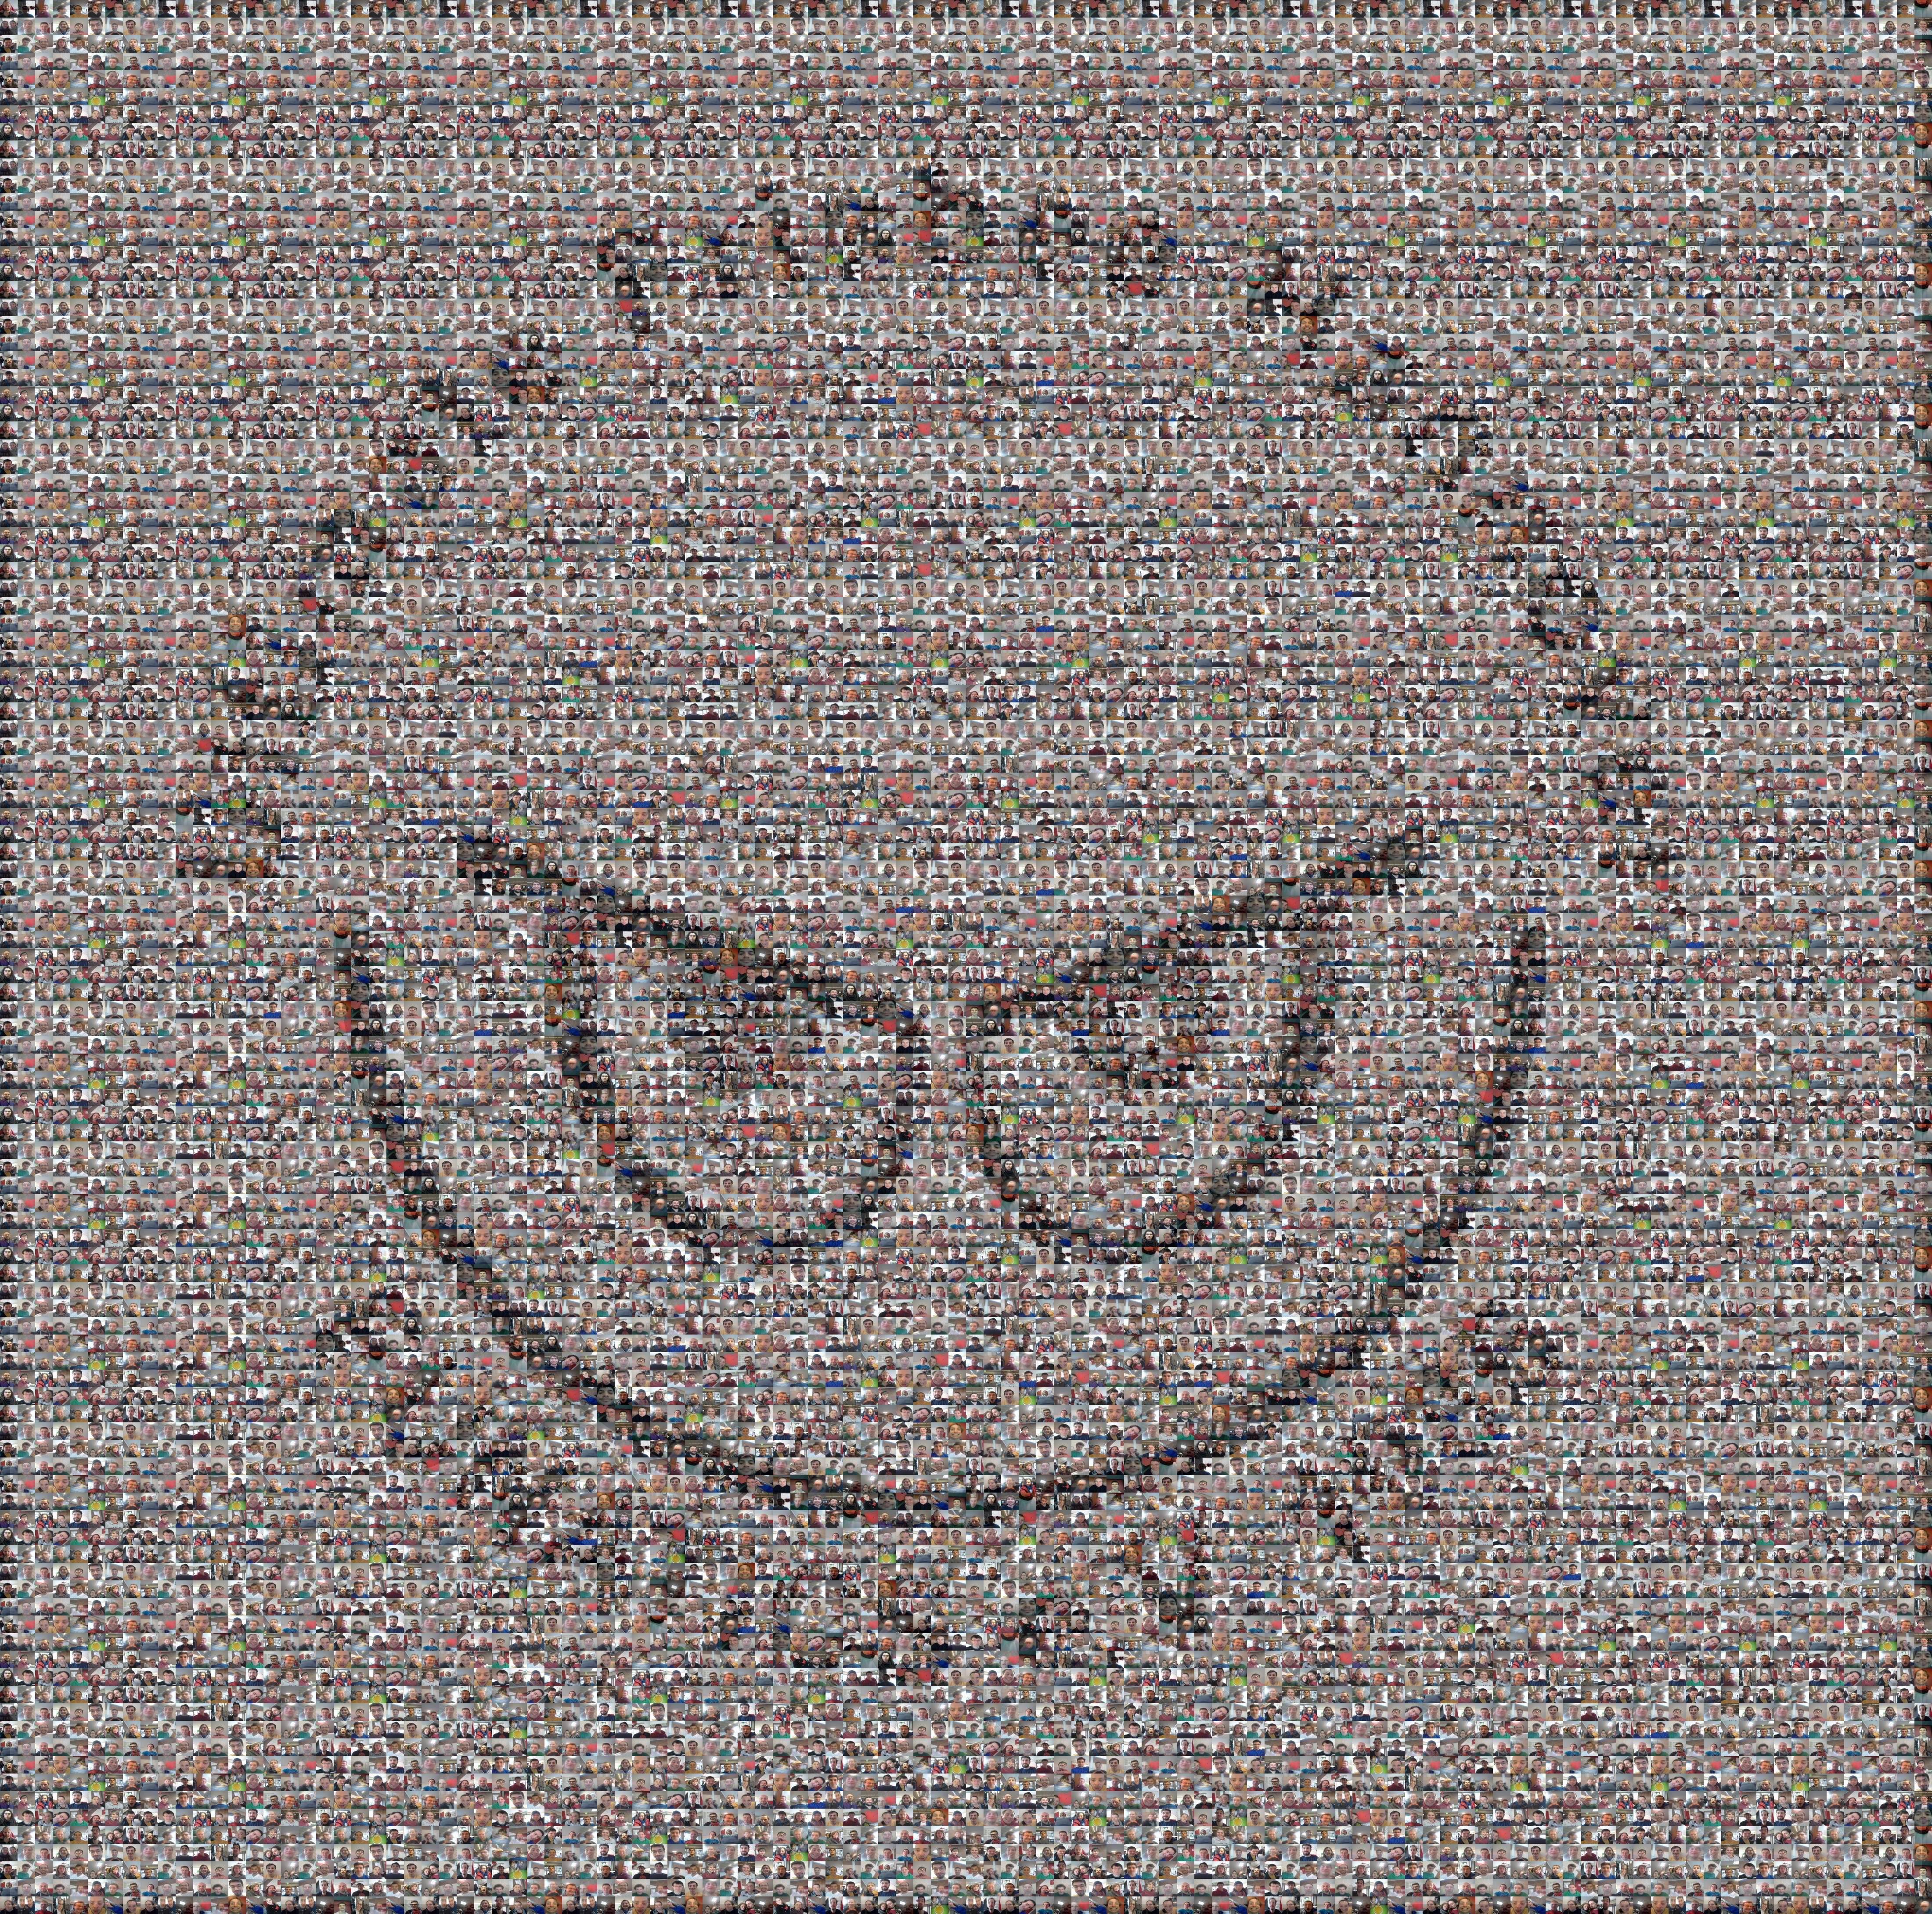 smiley_mosaic2